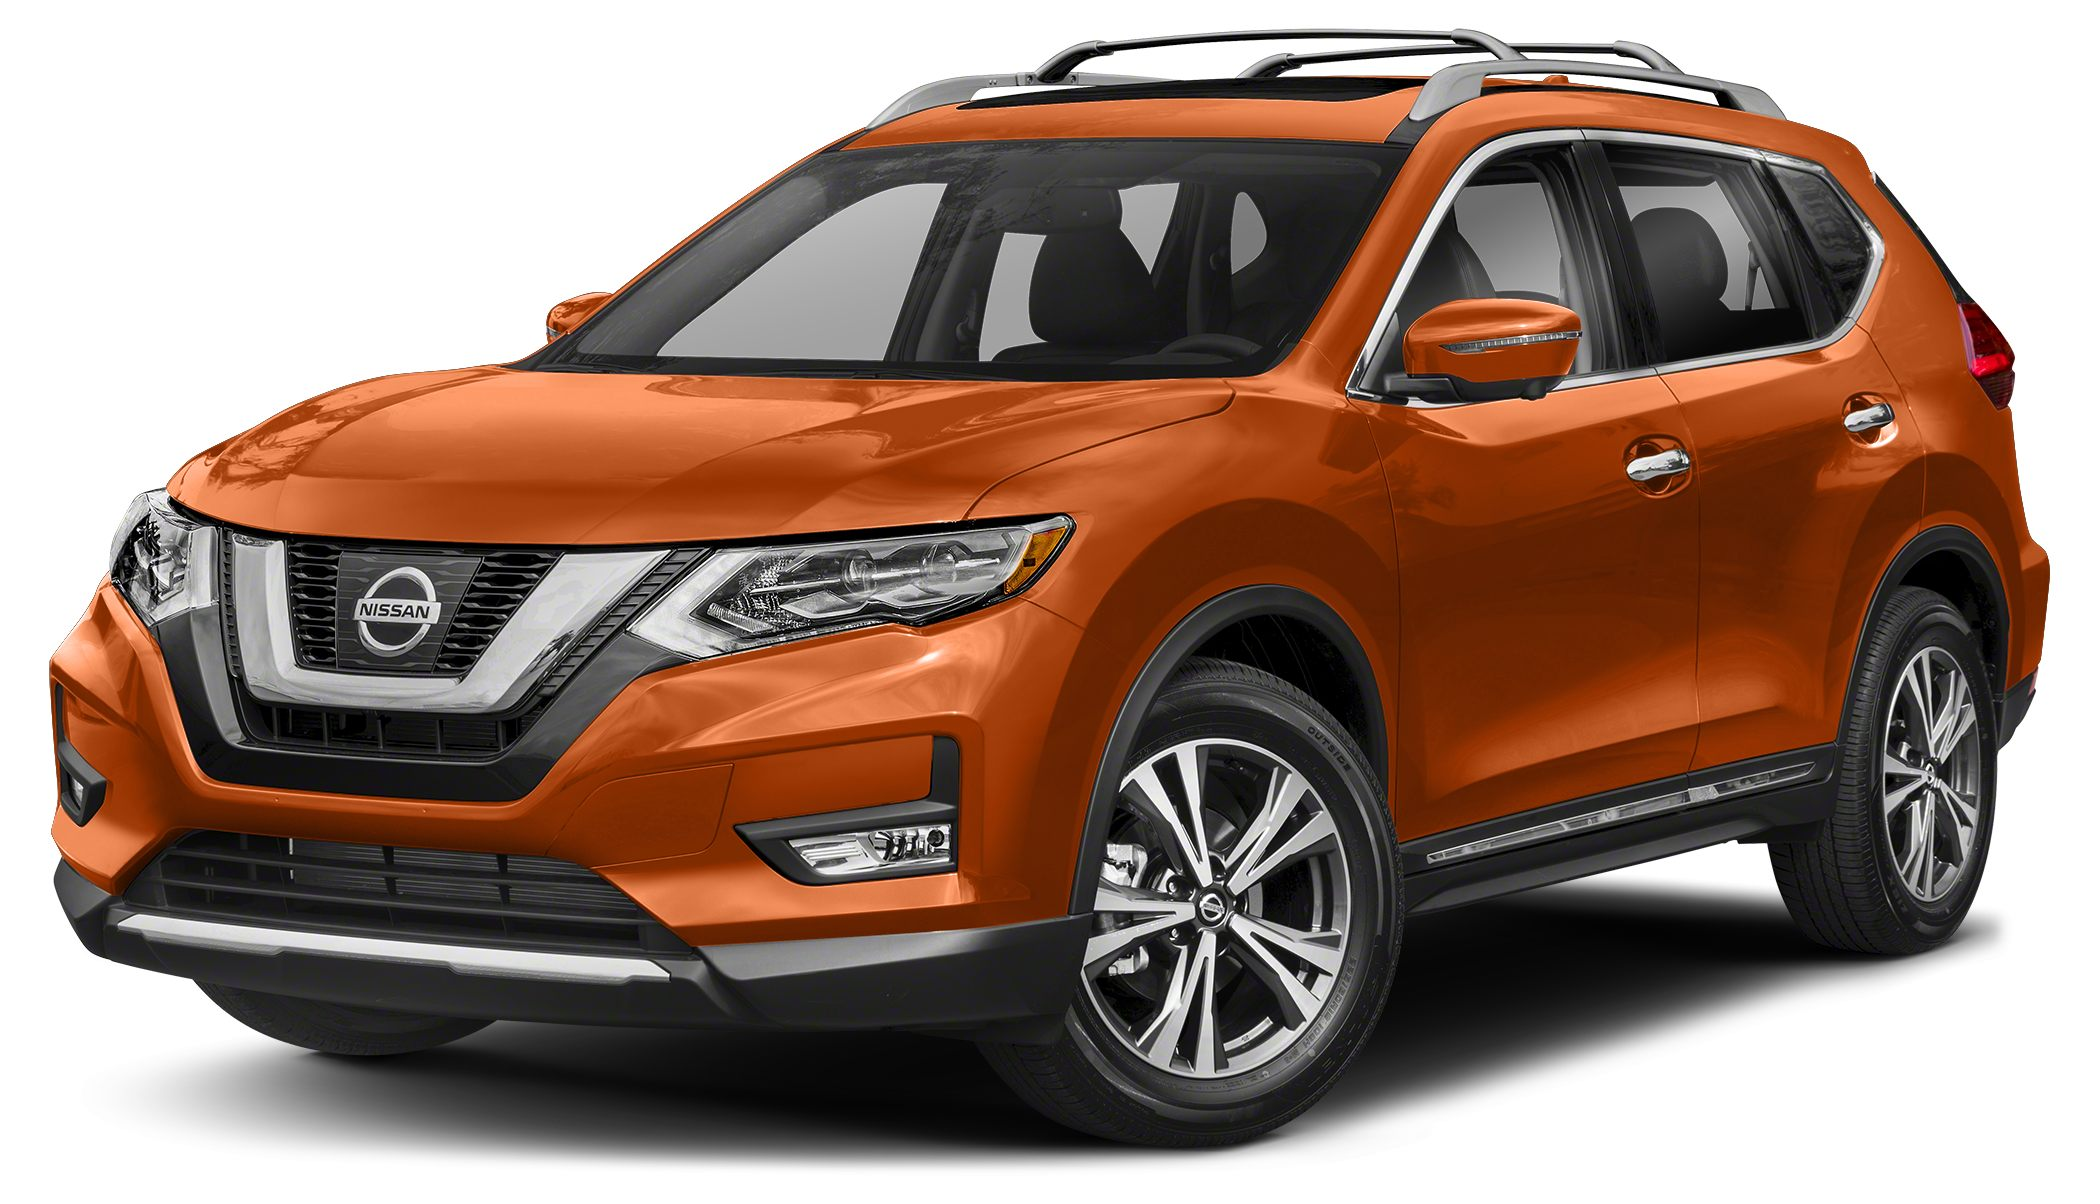 2017 Nissan Rogue SL -Great Gas Mileage- Navigation Bluetooth This 2017 Nissan Rogue SL is Pea